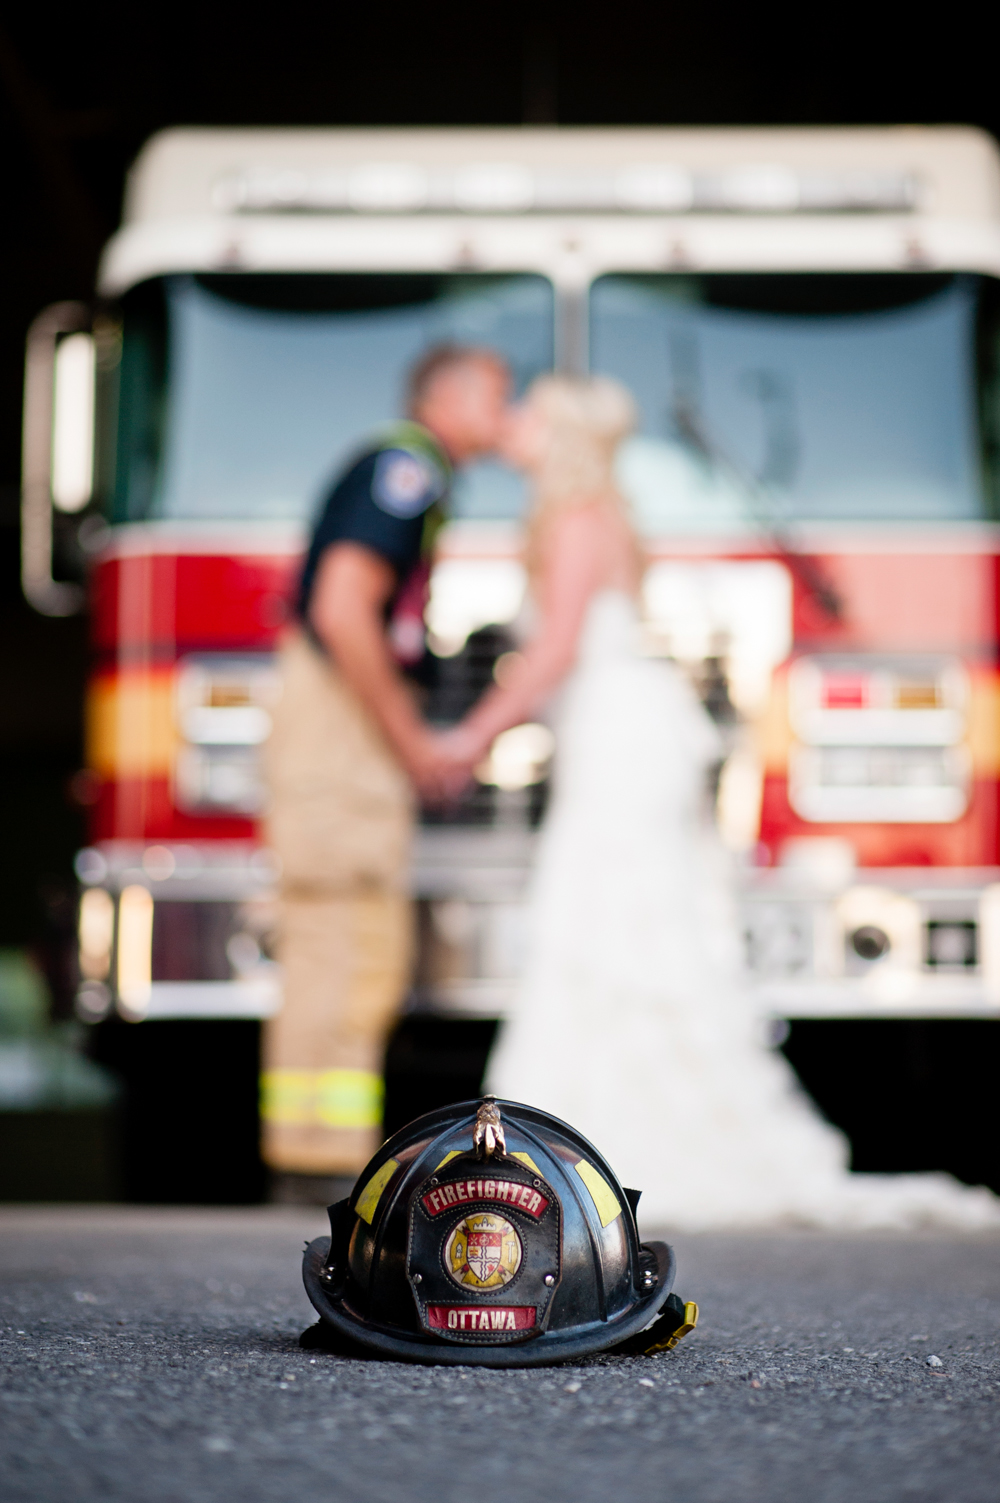 black-lamb-photography-ottawa-wedding-photographer-fire-fighter-themed-wedding-shoot-51